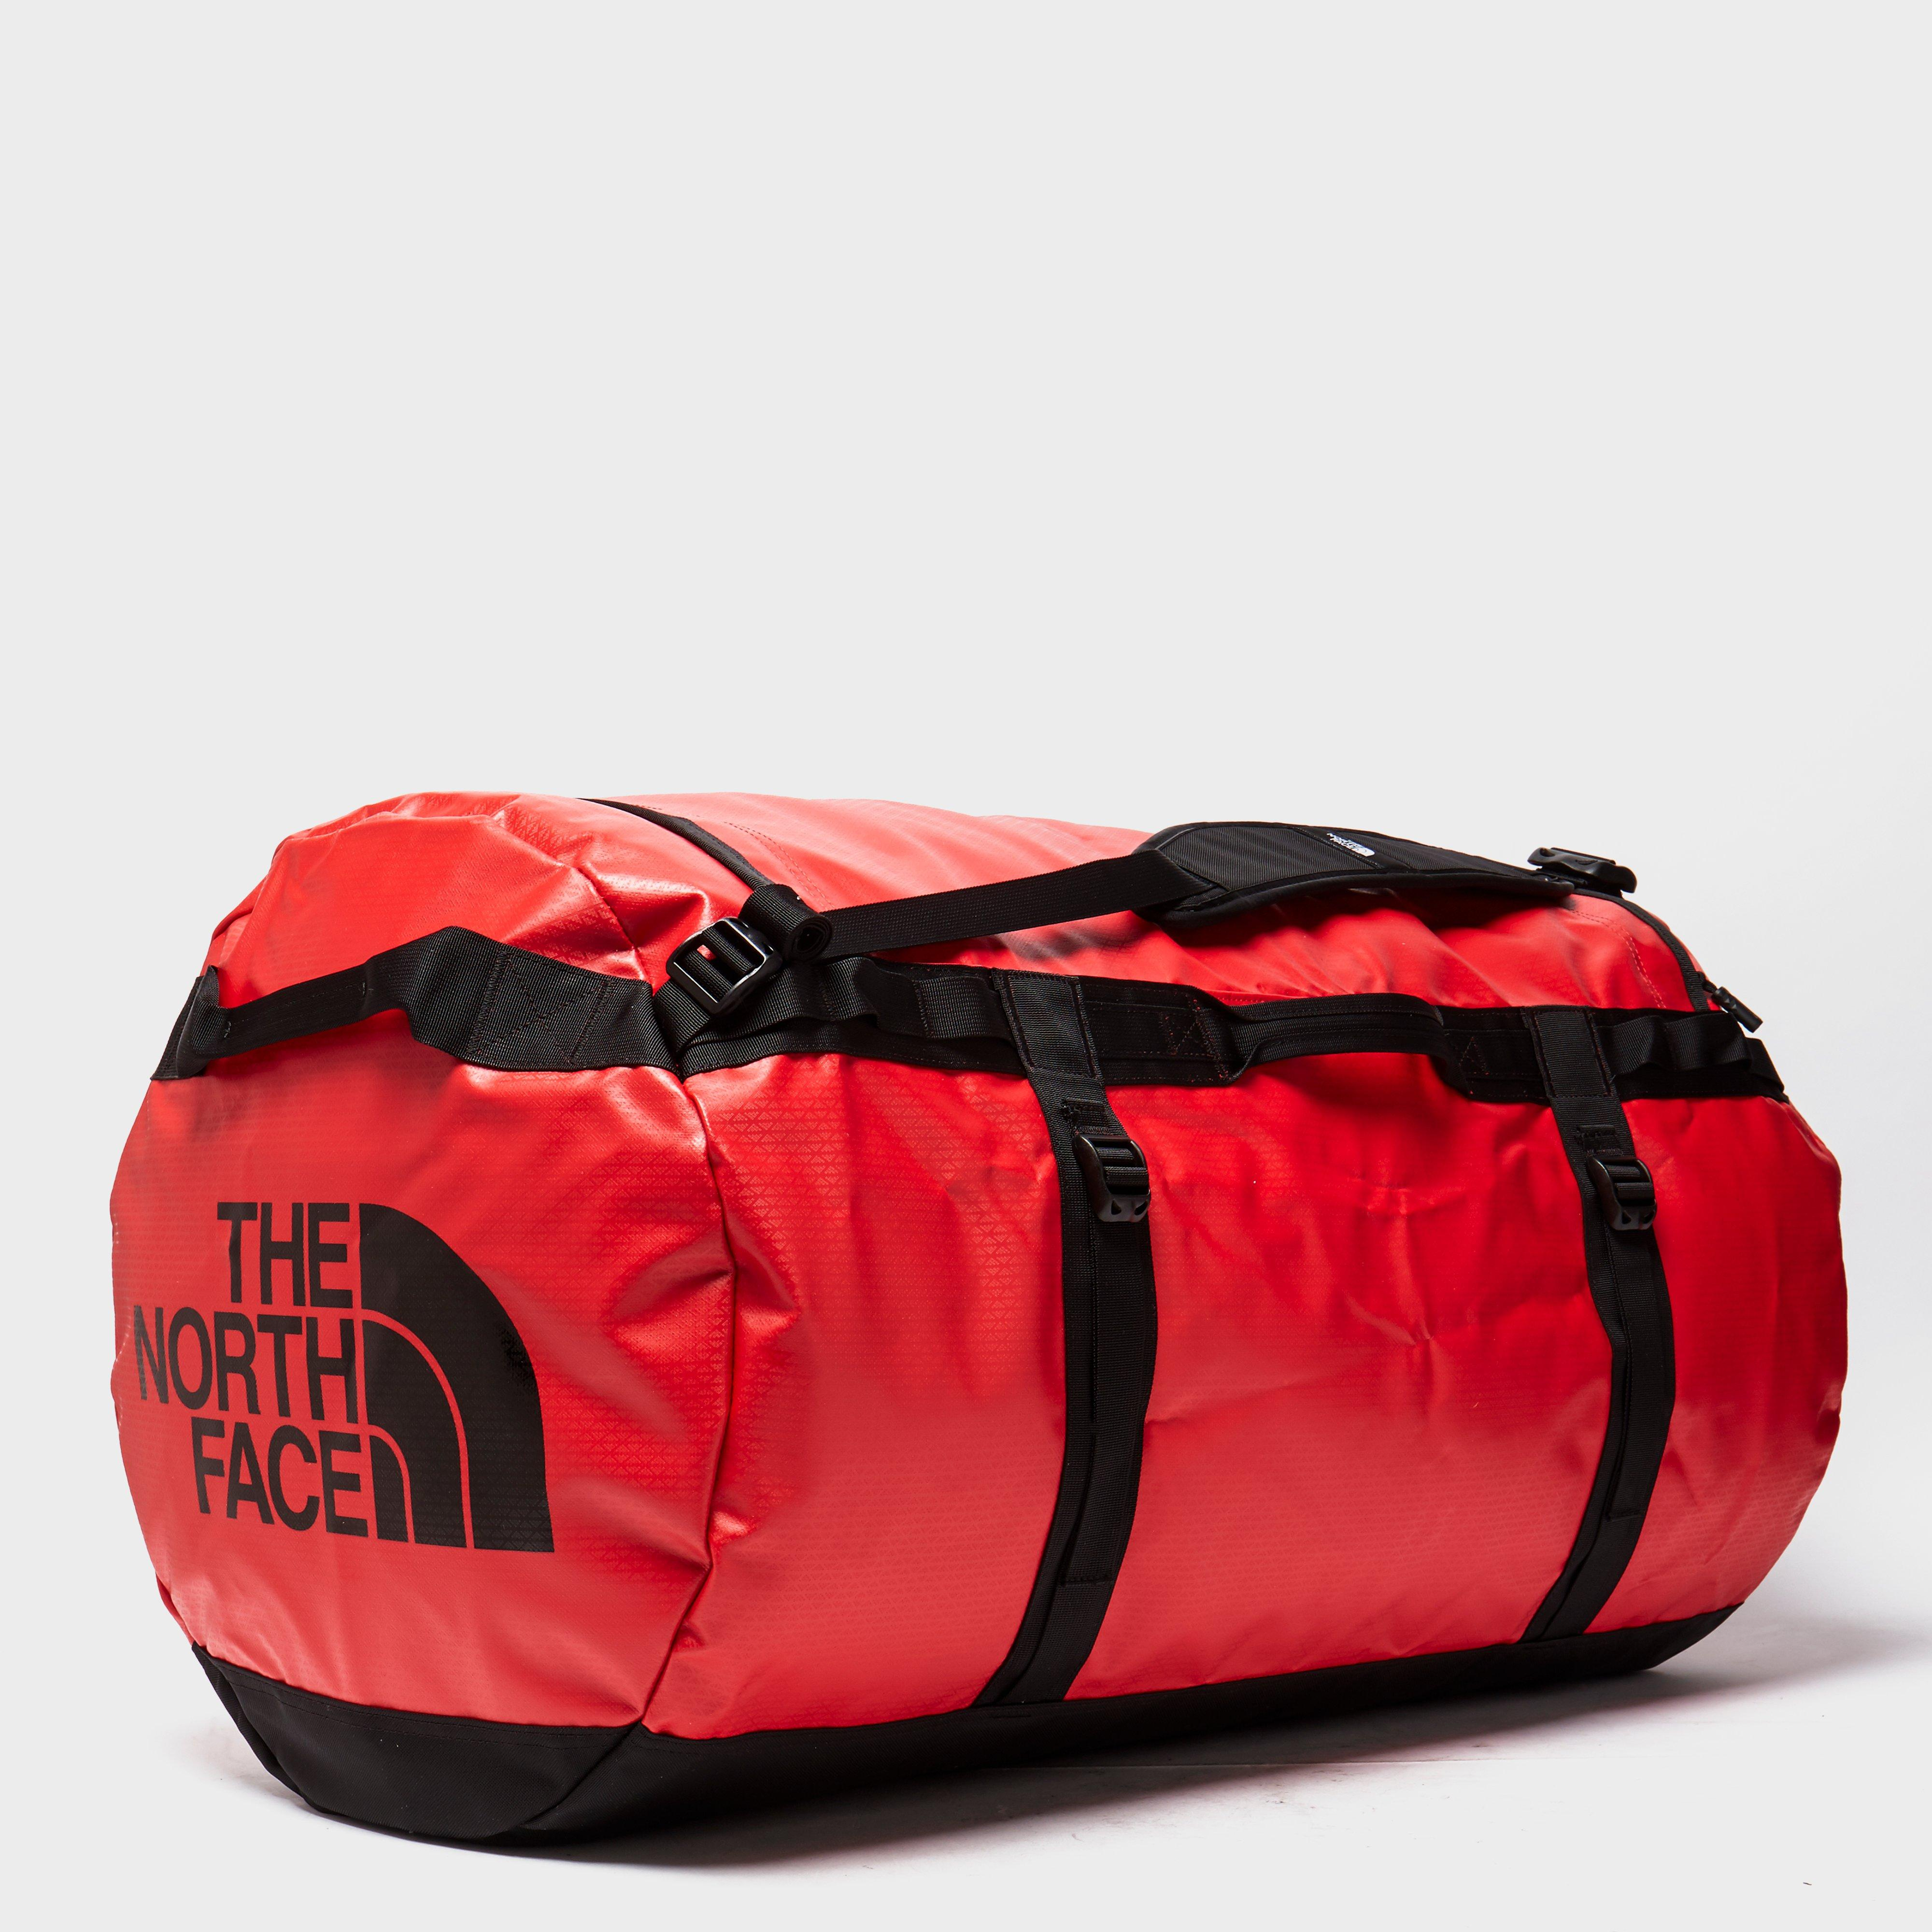 The North Face BaseCamp 50 Litre Duffel Bag  XLarge  Red Red